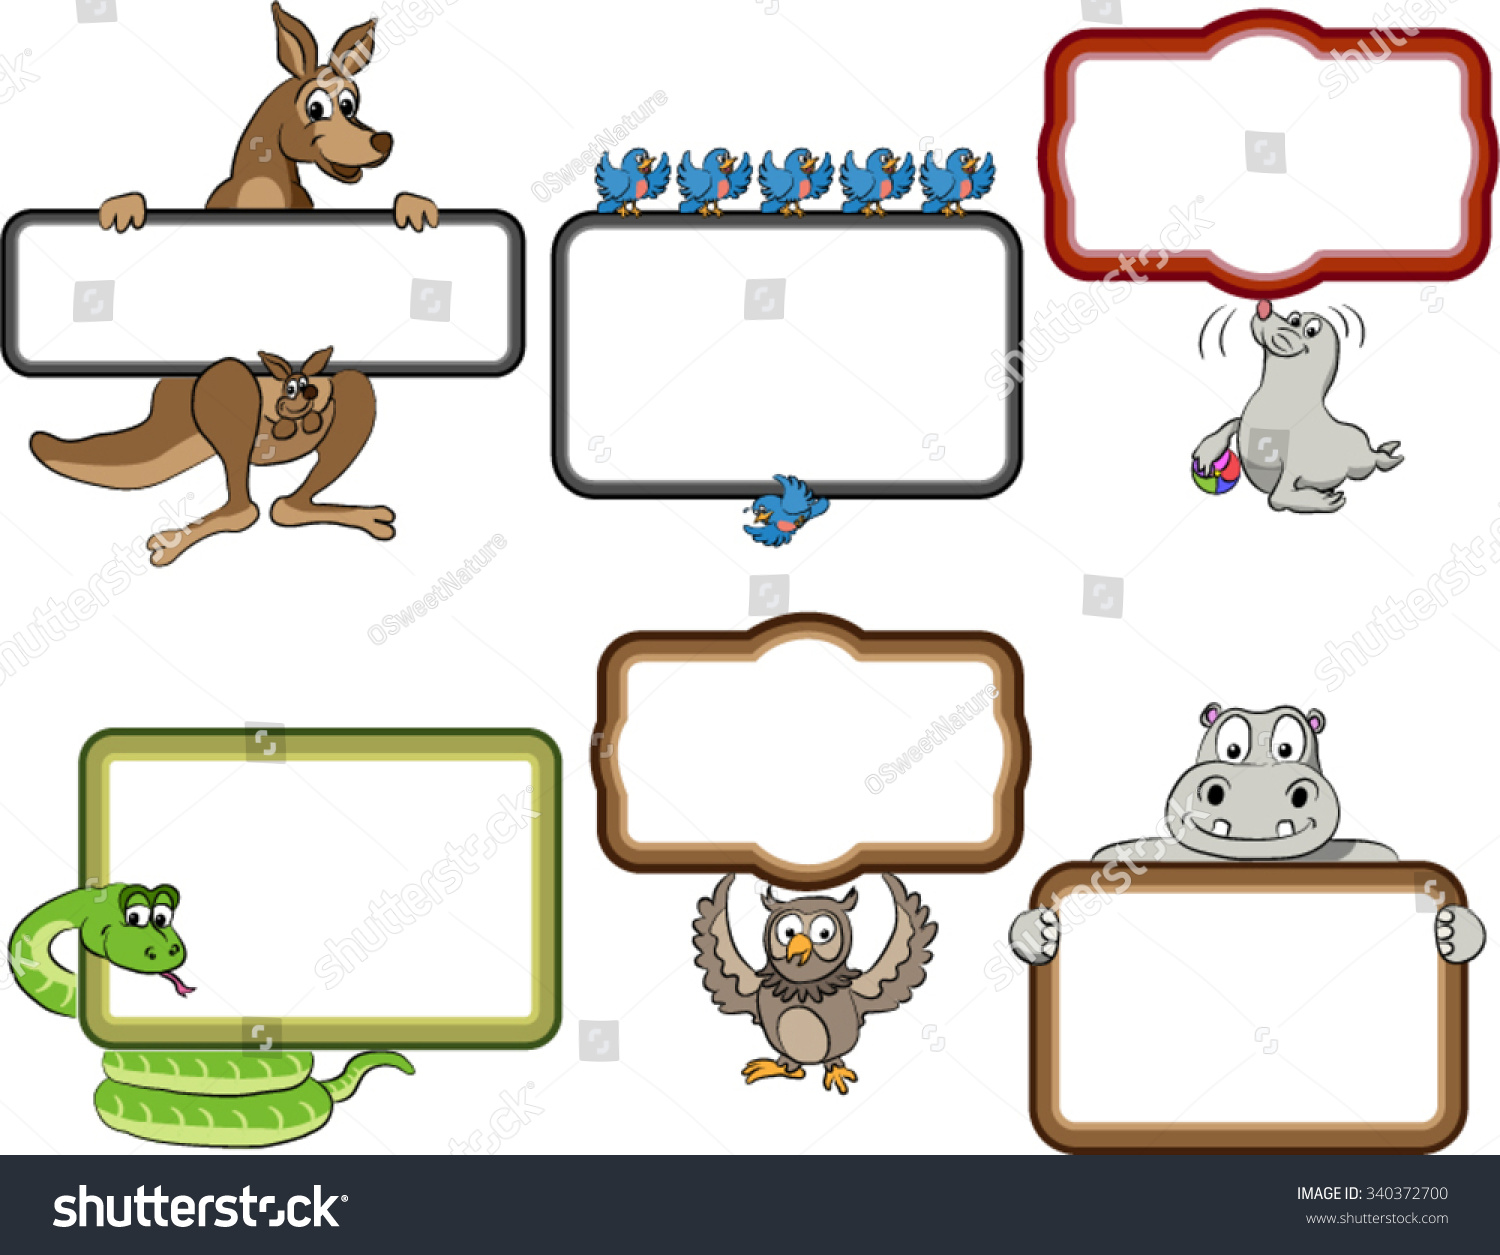 frames with cartoon animals blank frames with cartoon animals holding up the frames snake